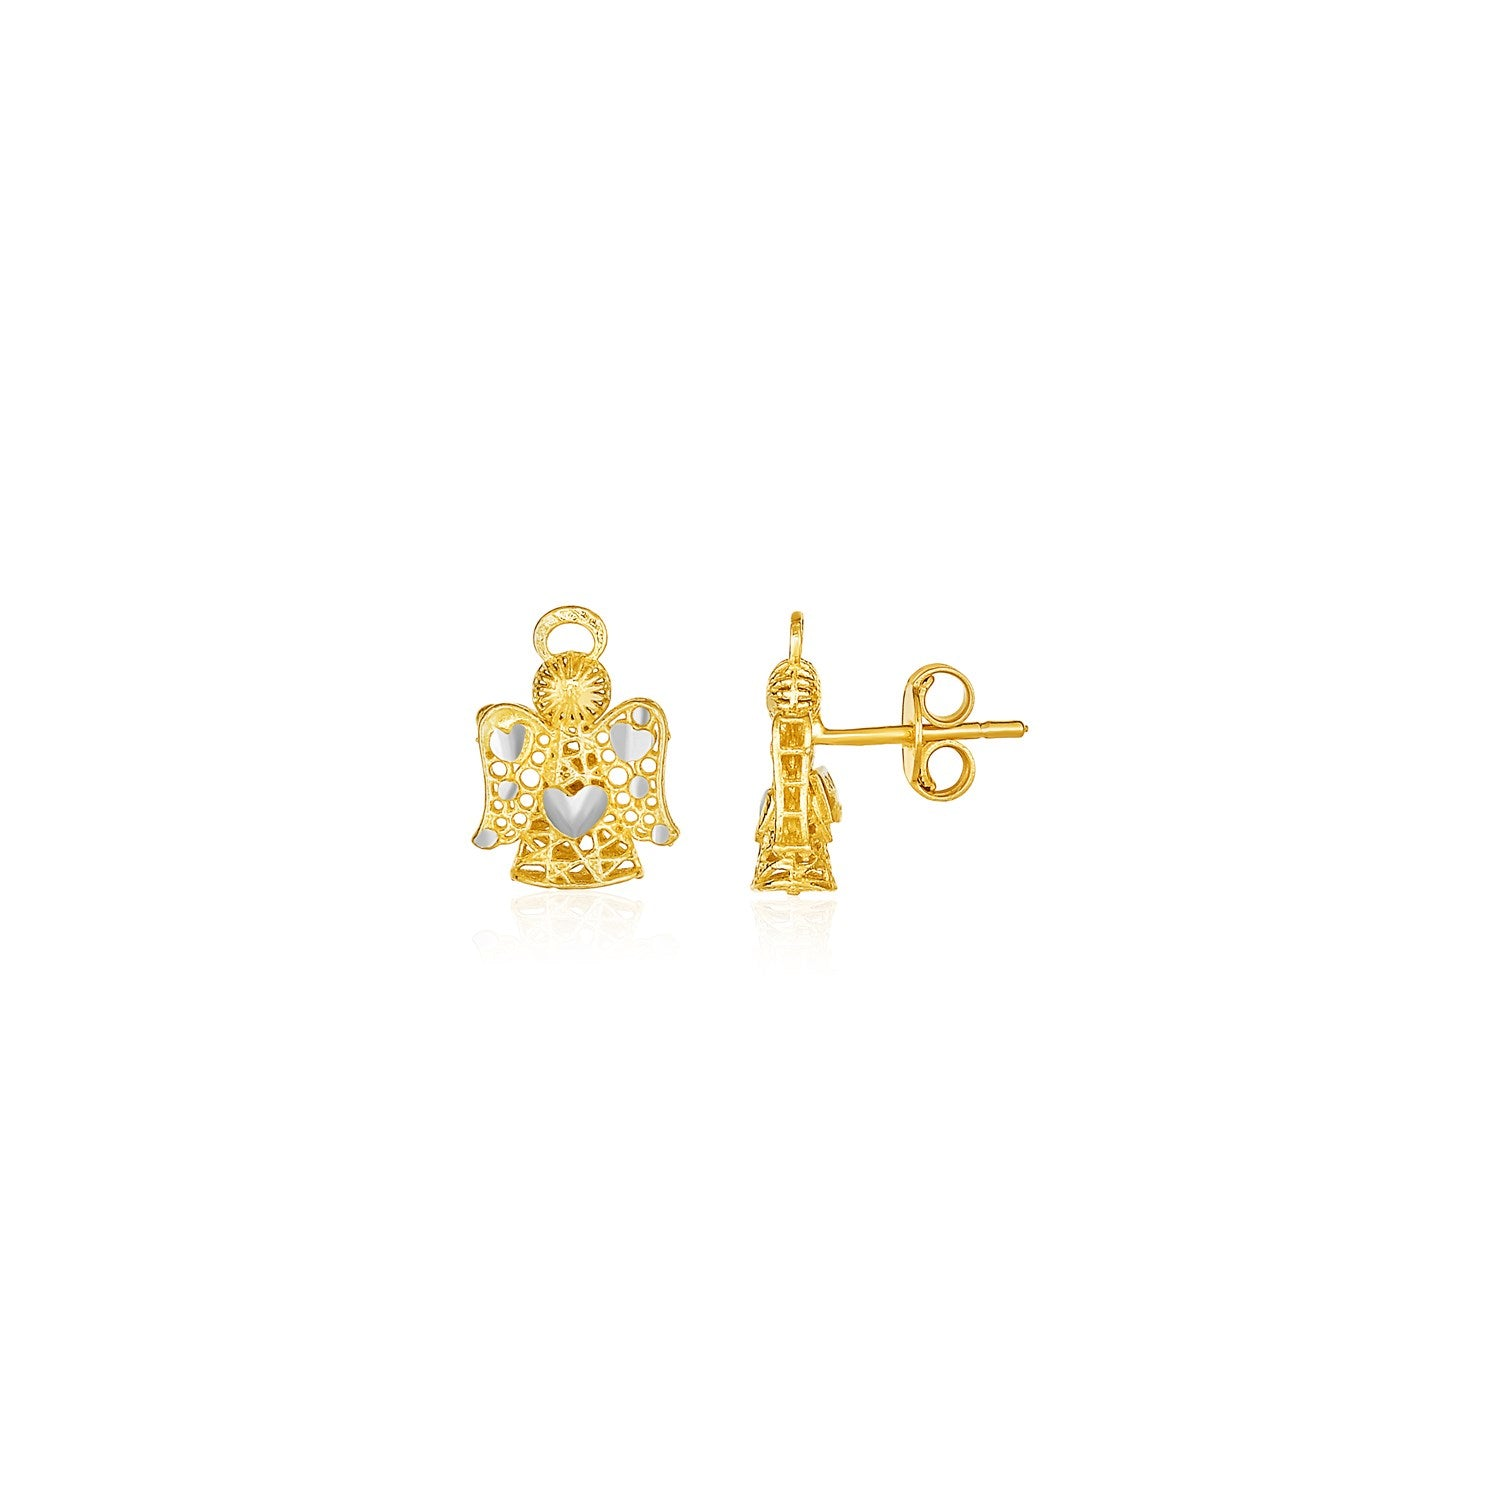 Original New York Style  Filigree Style Angel Post Earrings in 14K Yellow Gold